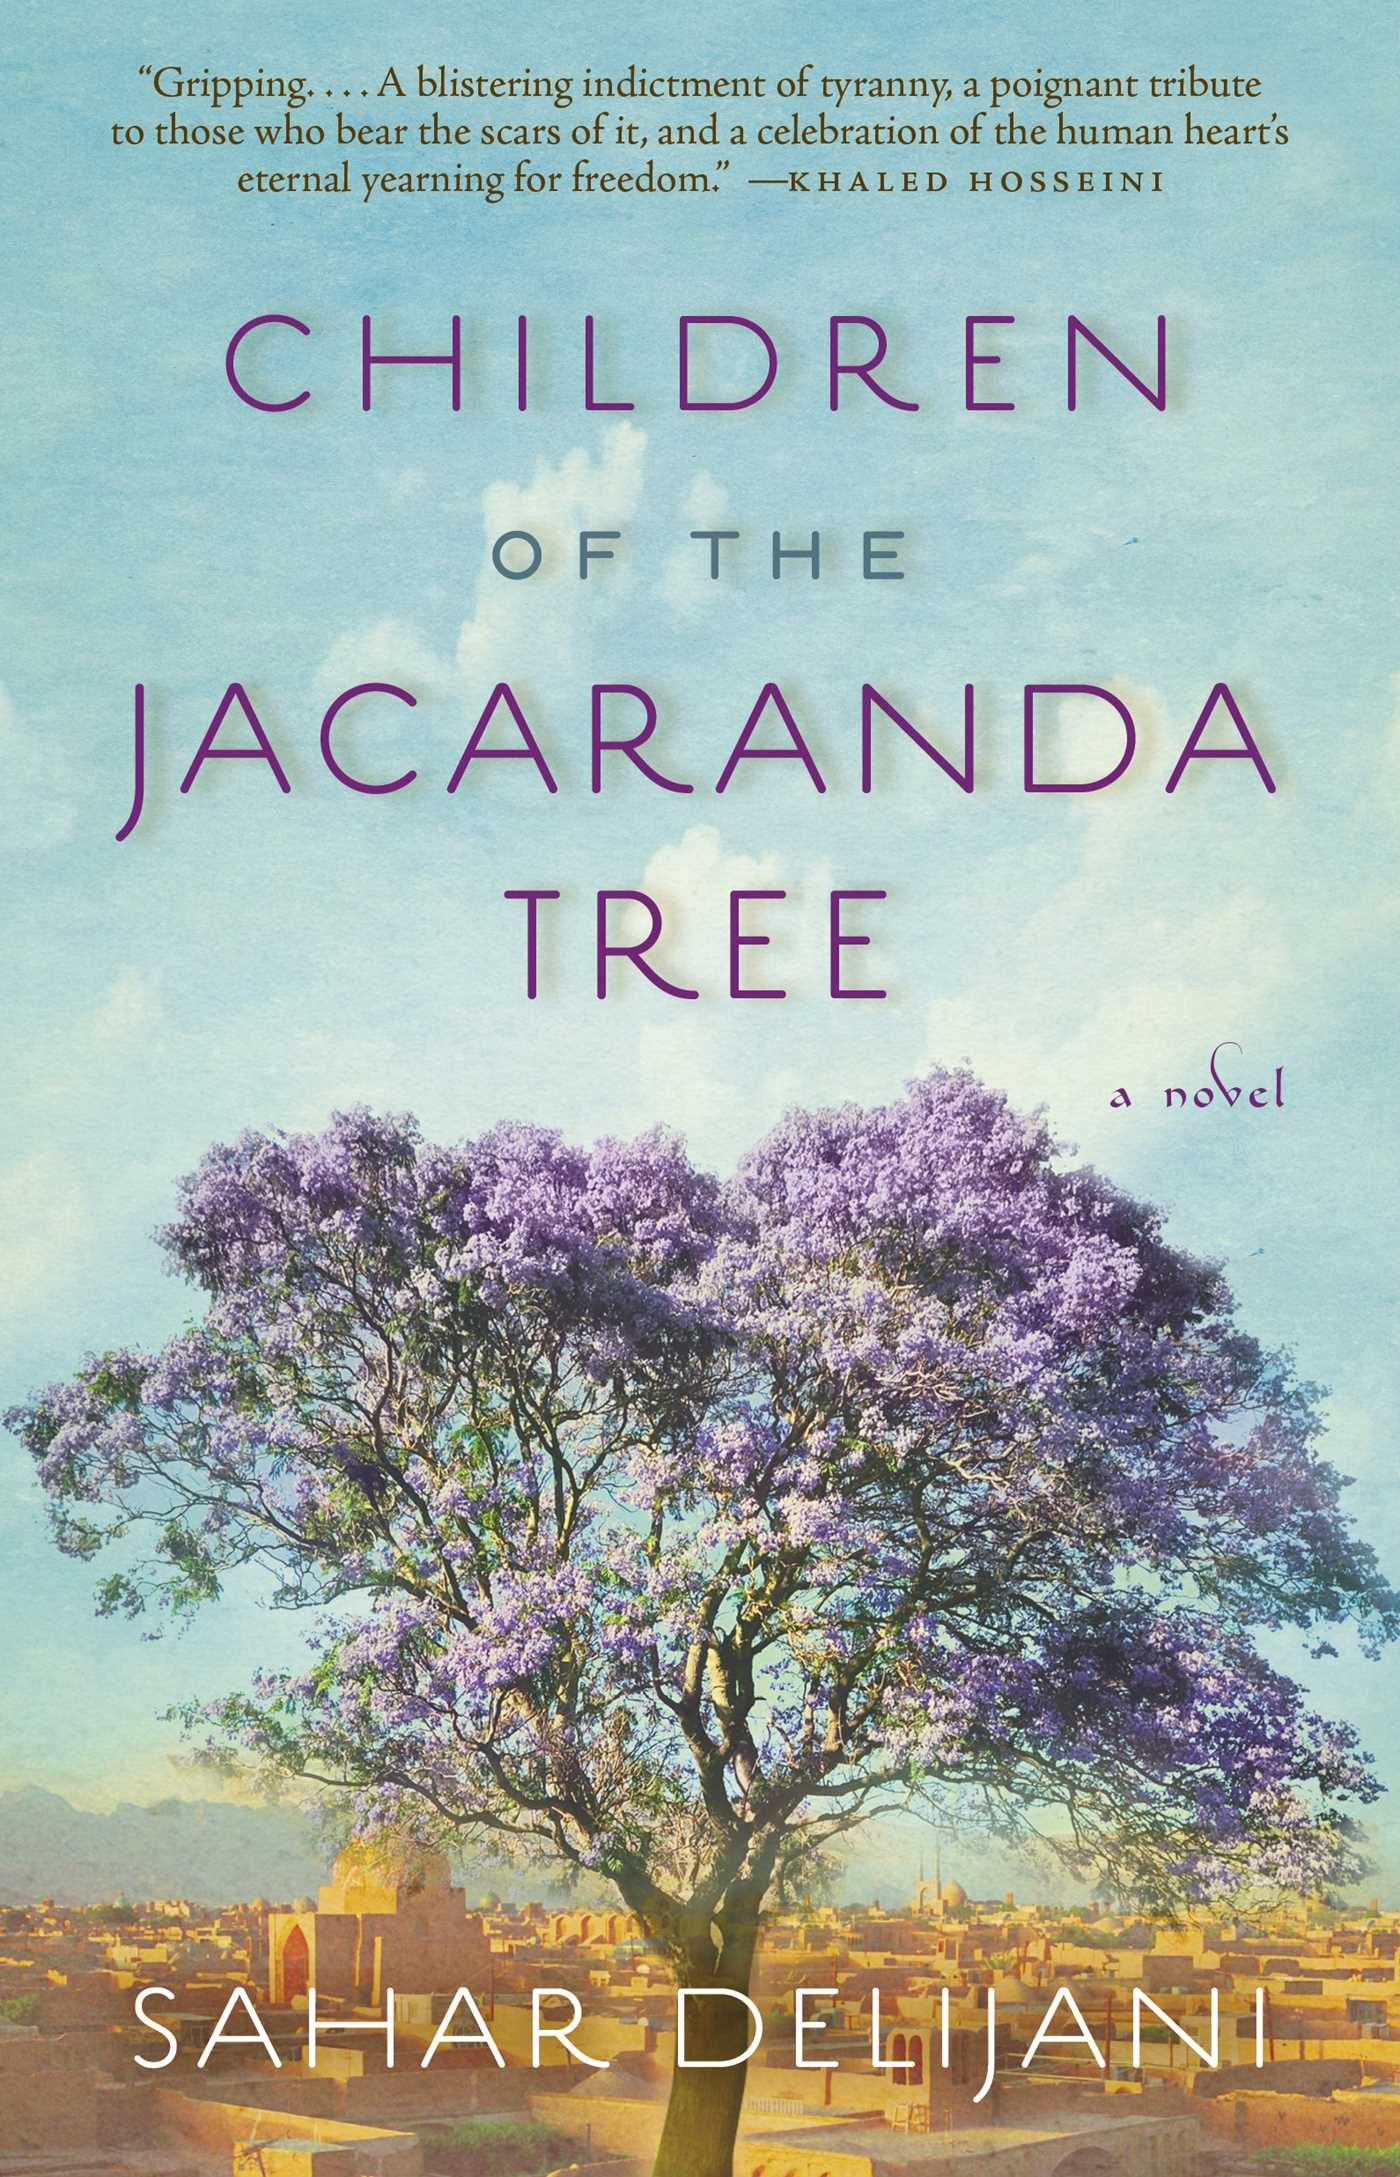 Children-of-the-jacaranda-tree-9781476709109_hr